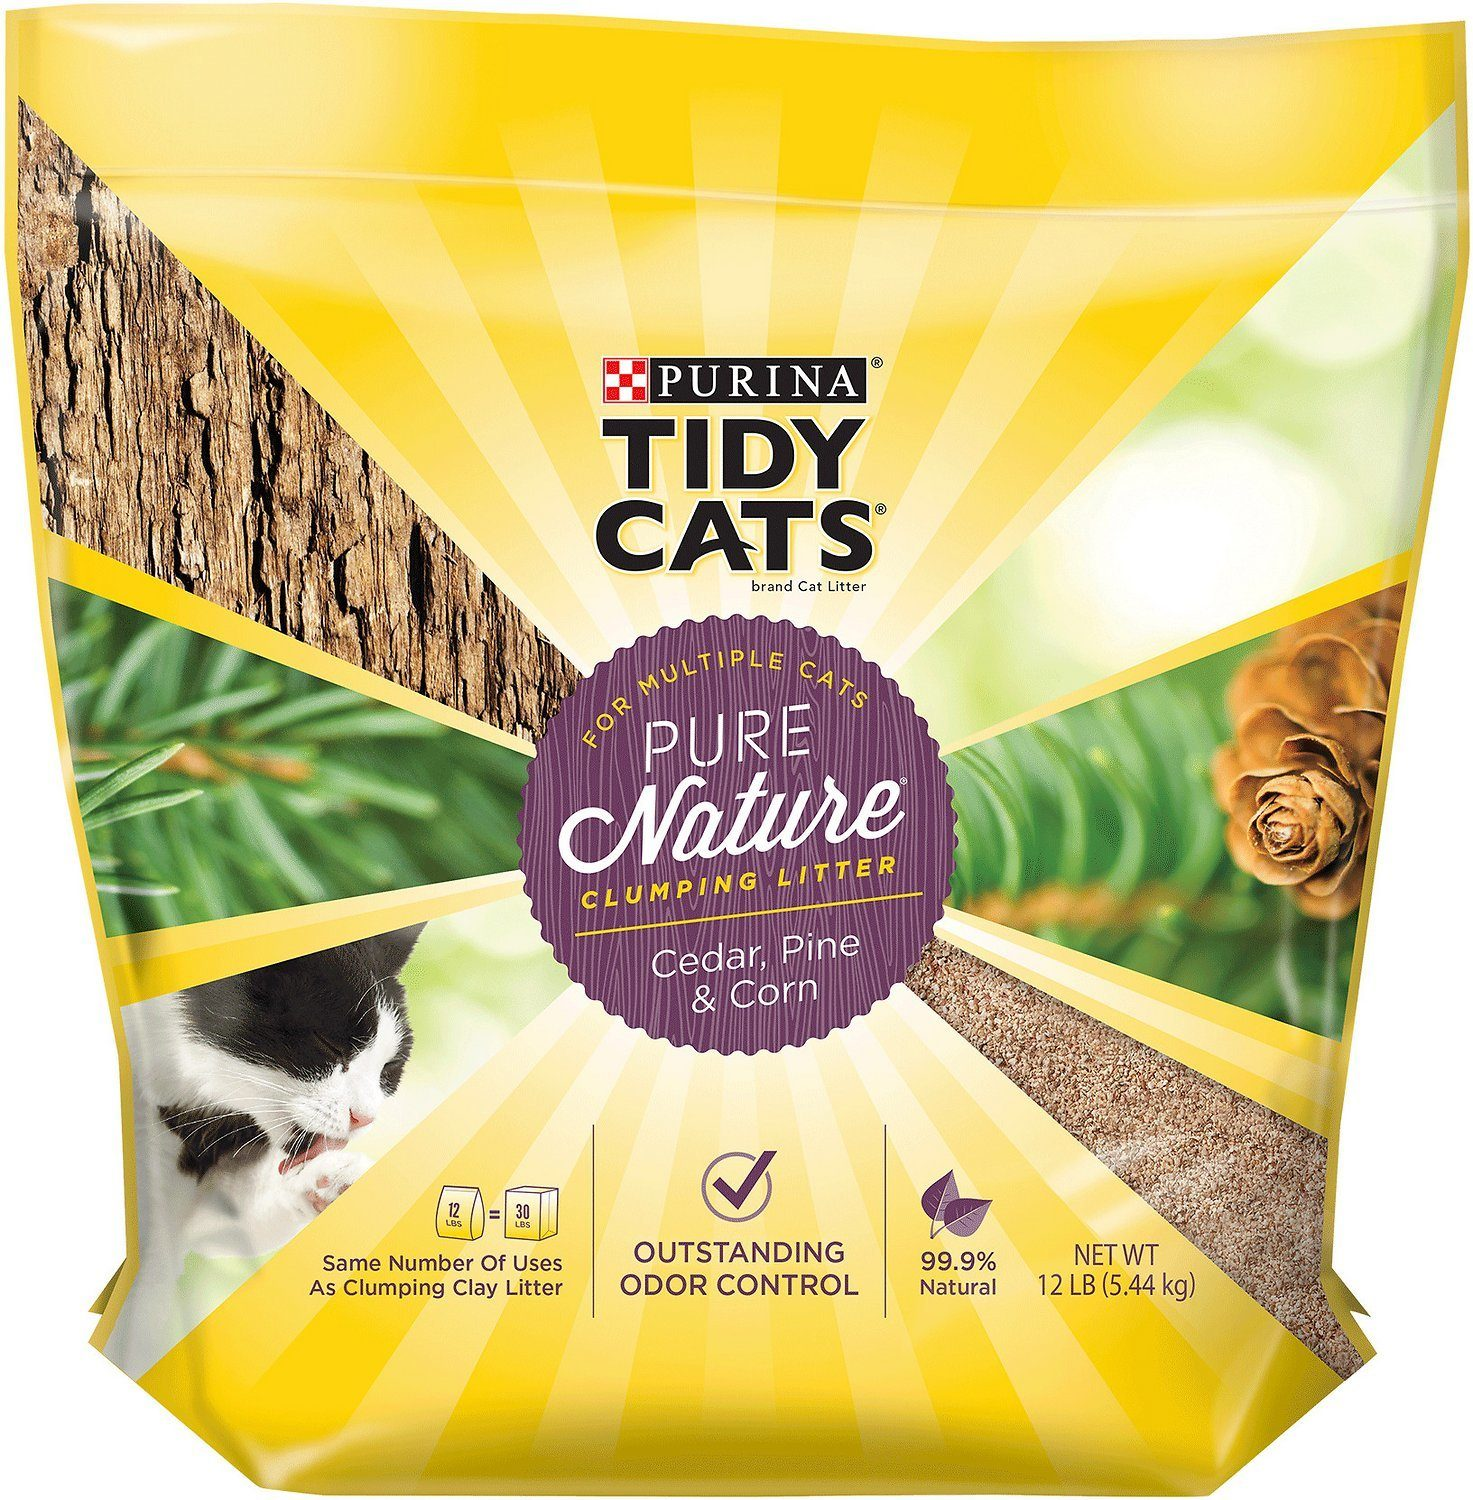 purina tidy cats pure natural cat litter review